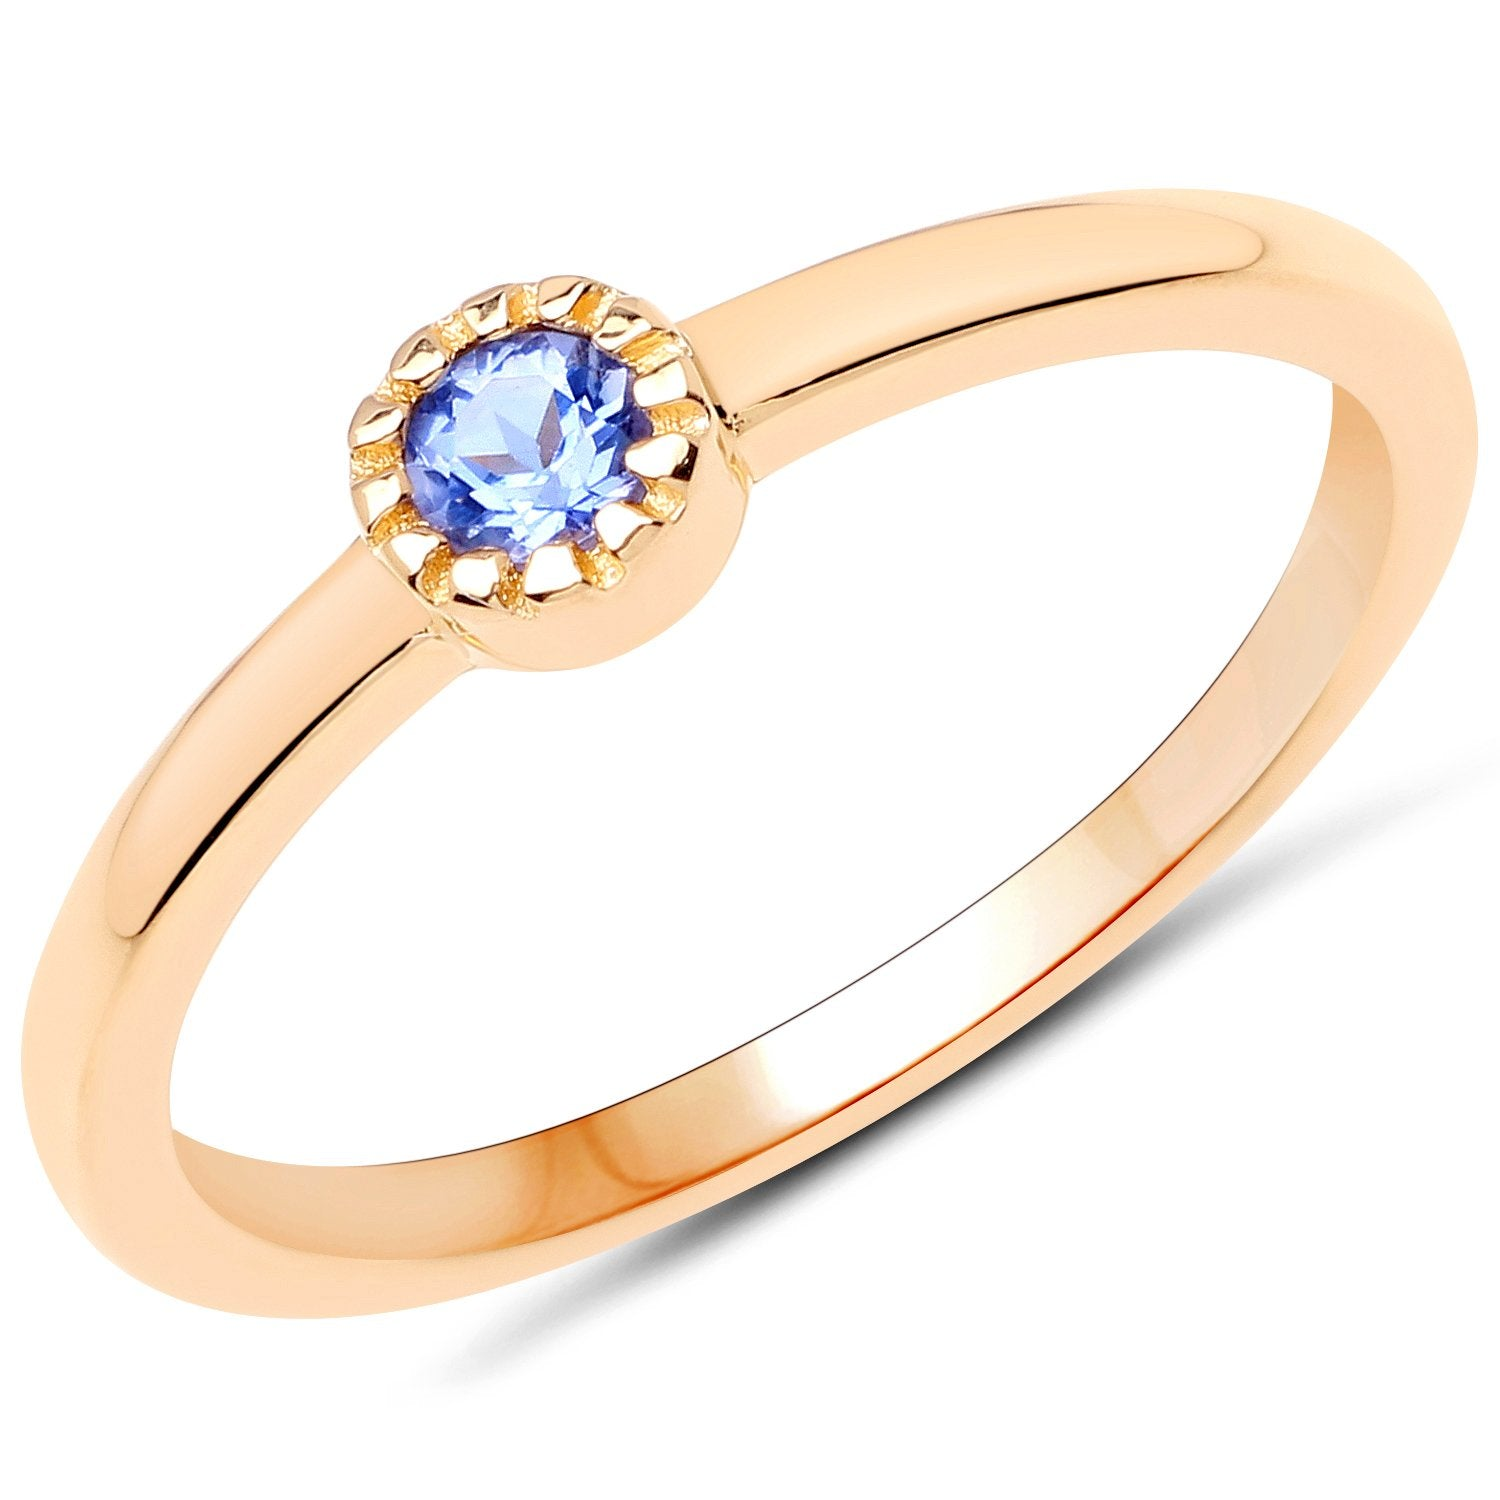 LoveHuang 0.09 Carats Genuine Tanzanite Stacking Ring Solid .925 Sterling Silver With 18KT Yellow Gold Plating